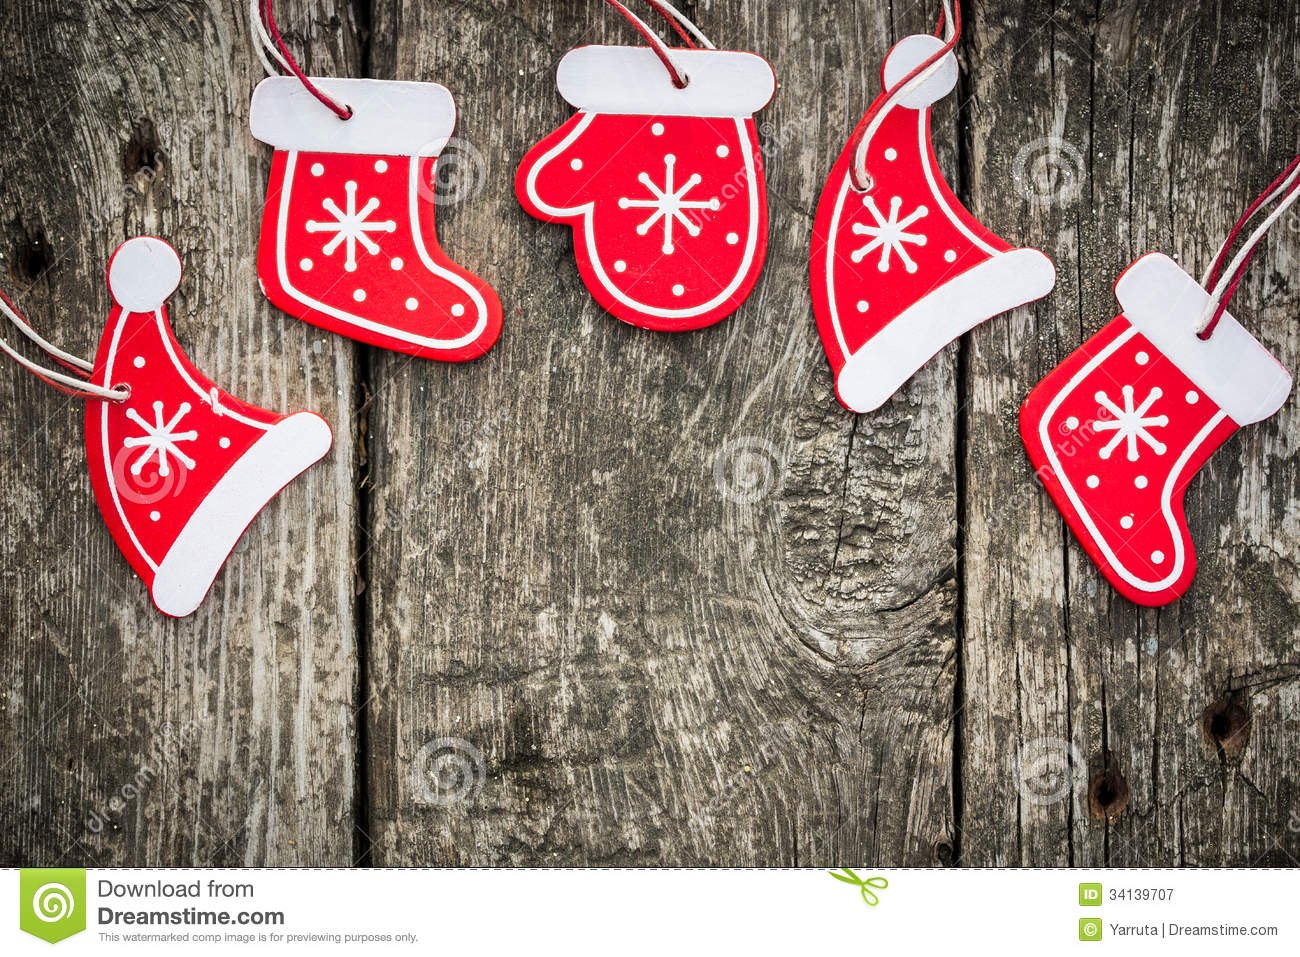 Retro christmas decorations - Red Christmas Tree Decorations On Grunge Wood Royalty Free